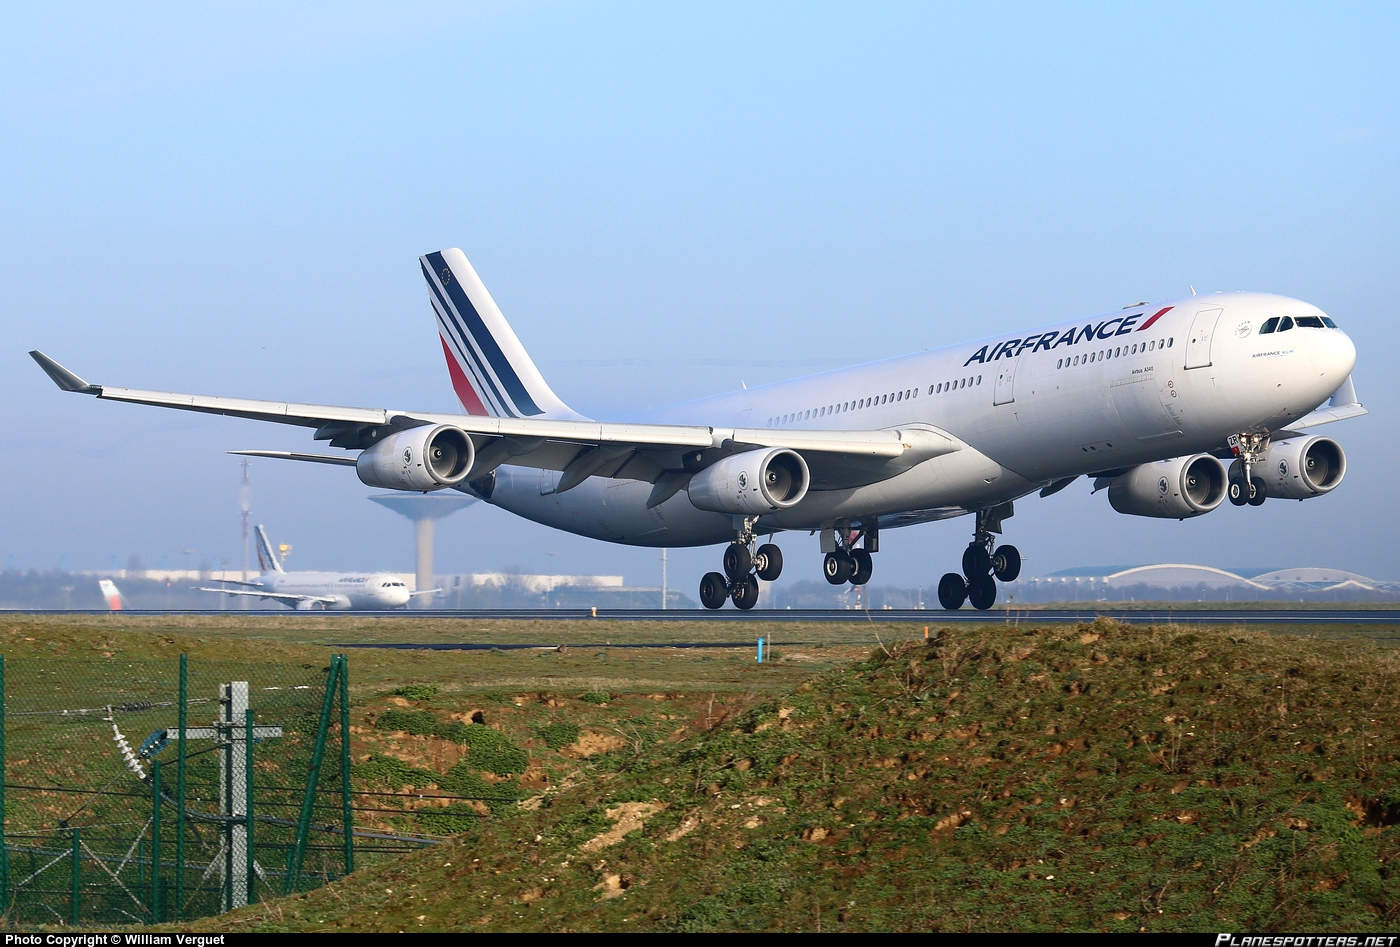 Air France flight grounded because of a mouse